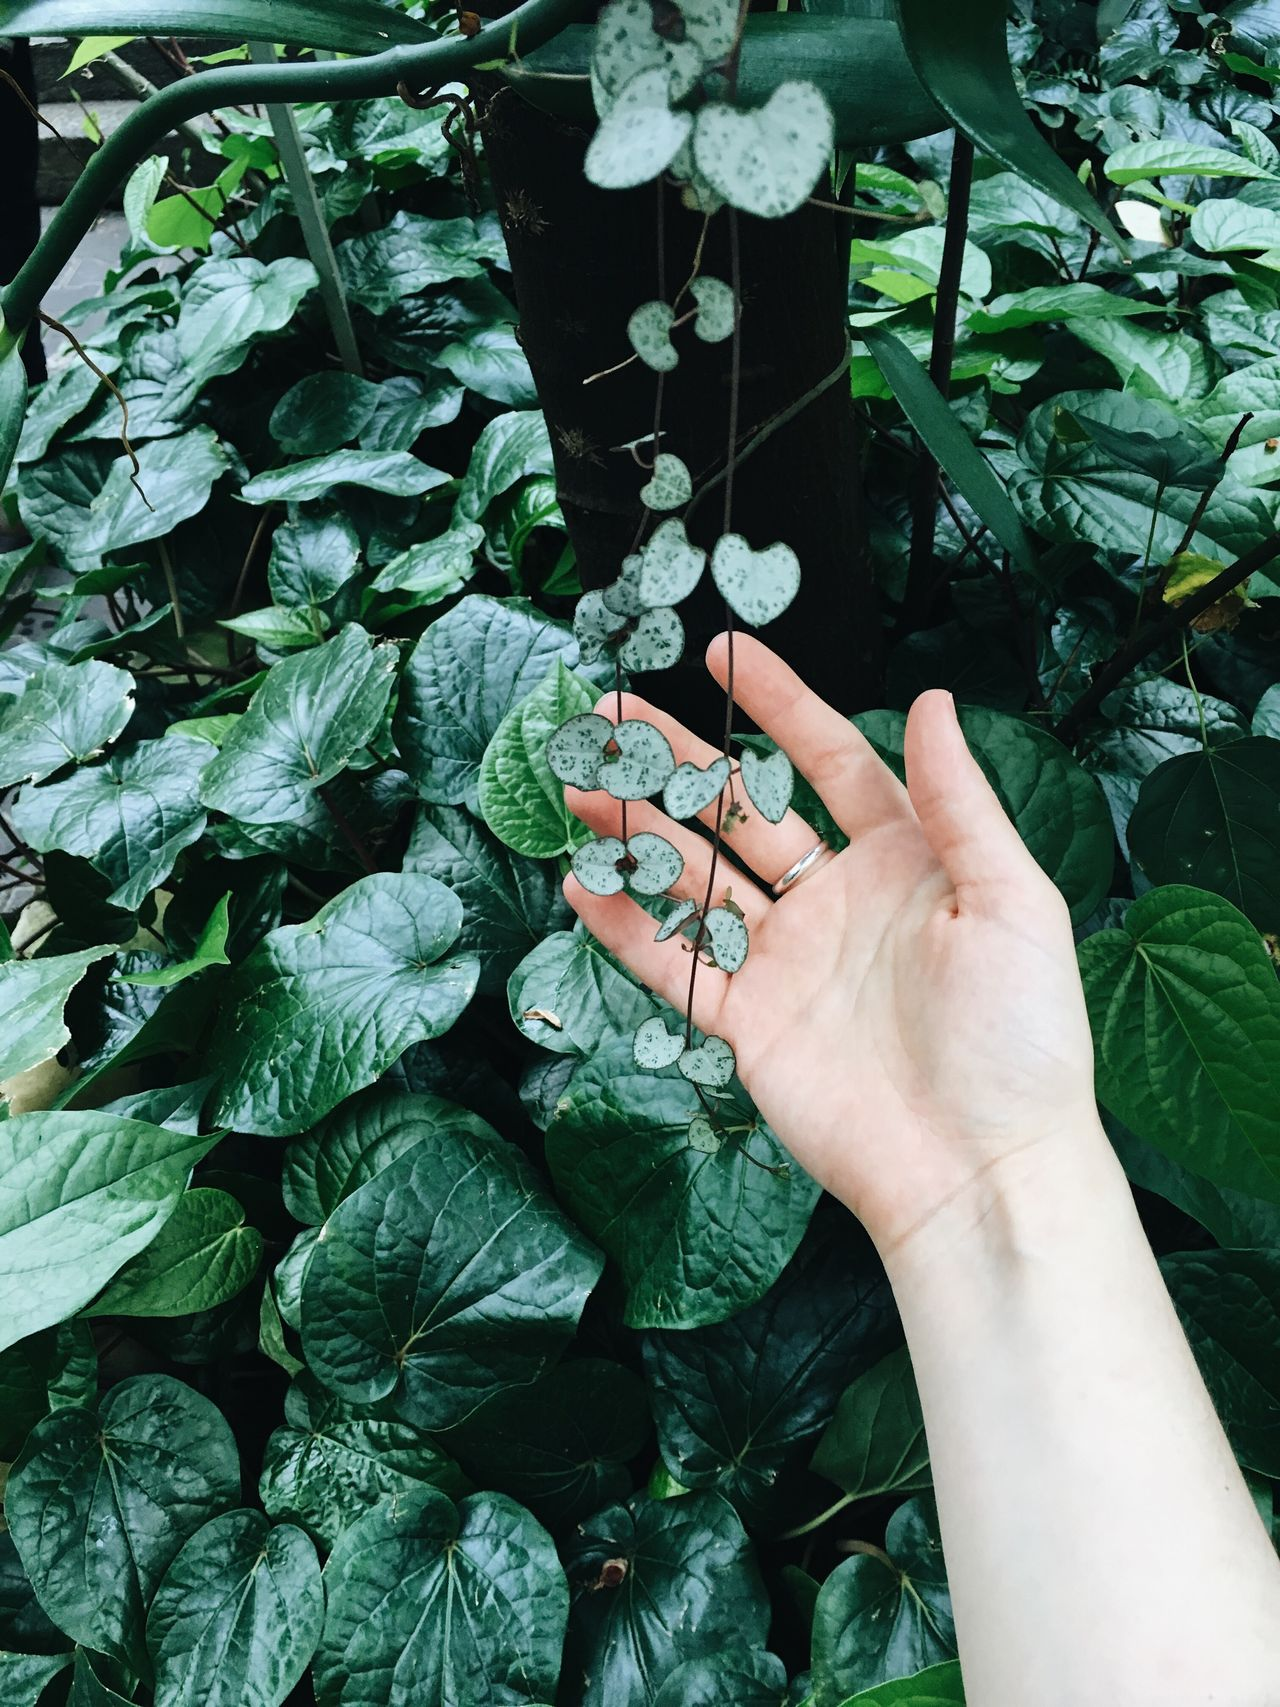 Jewellery Human Hand Leaf Human Body Part Plant Growth Green Color Outdoors Freshness Real People Lifestyles Nature EyeEm Nature Lover